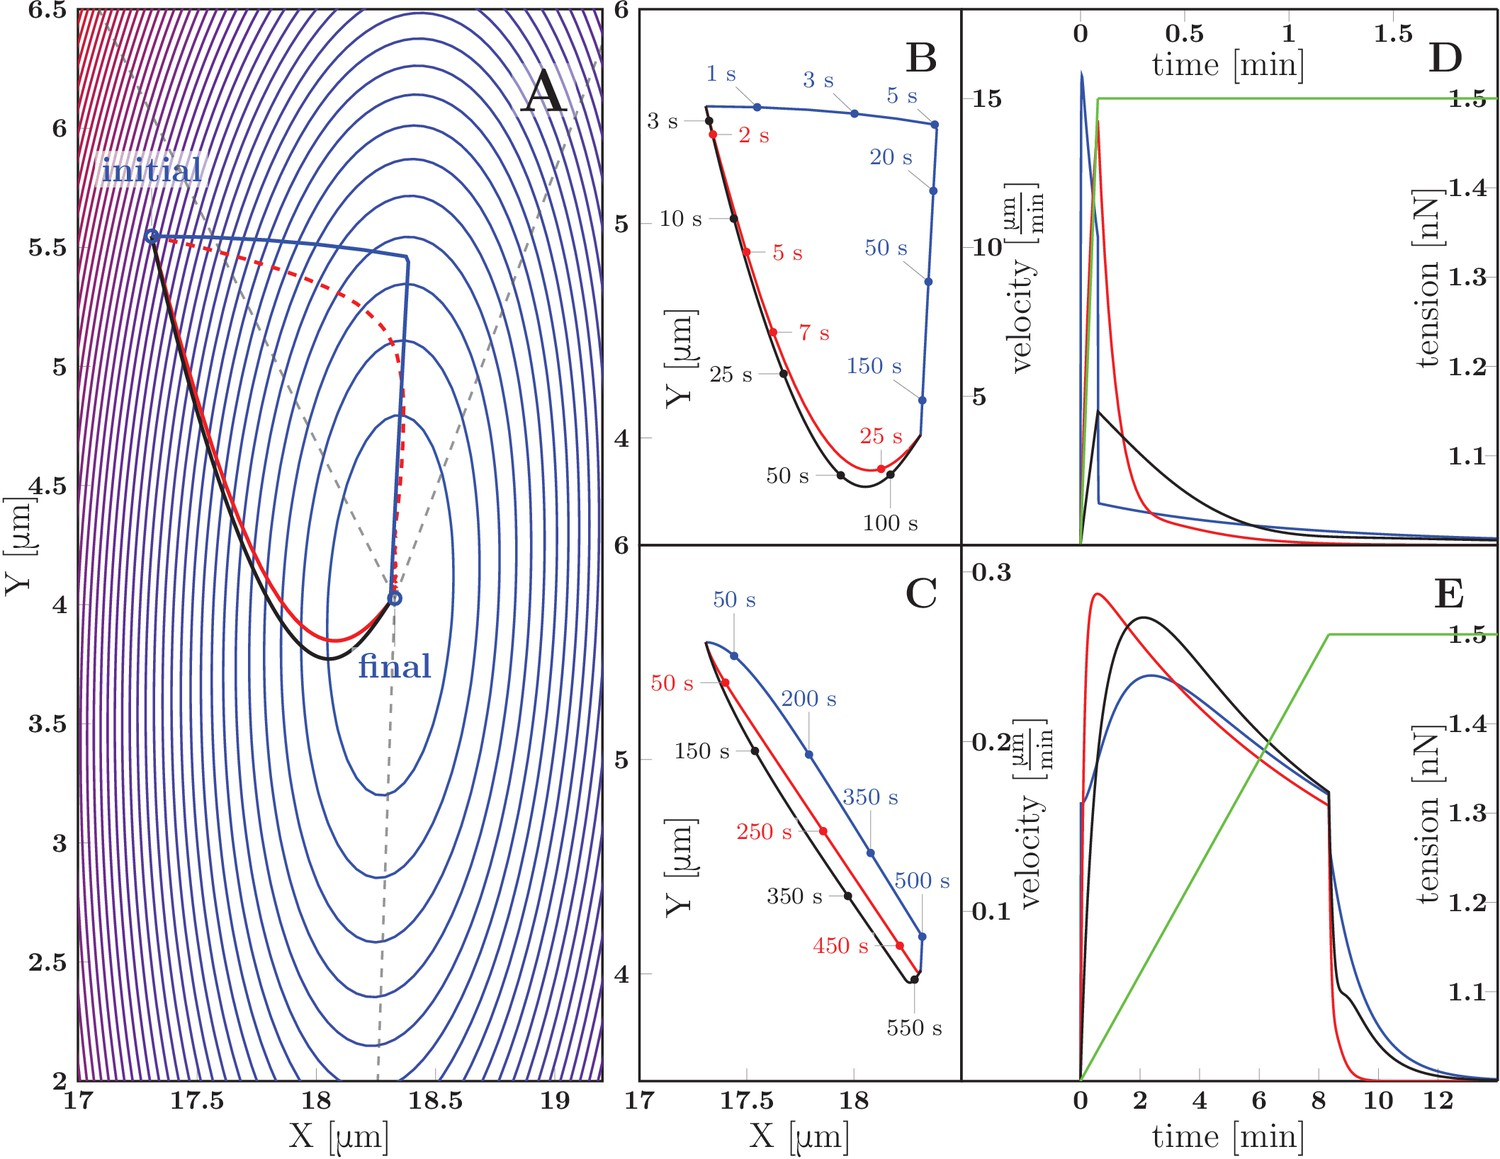 Axon Tension Regulates Fasciculation Defasciculation Through The Diagram Moreover Dip Switch Settings In Addition Cat 5 Crossover Cable Predicted Zippering Dynamics Resulting From Applying A Perturbation To Zipper Initially Equilibrium Converging New